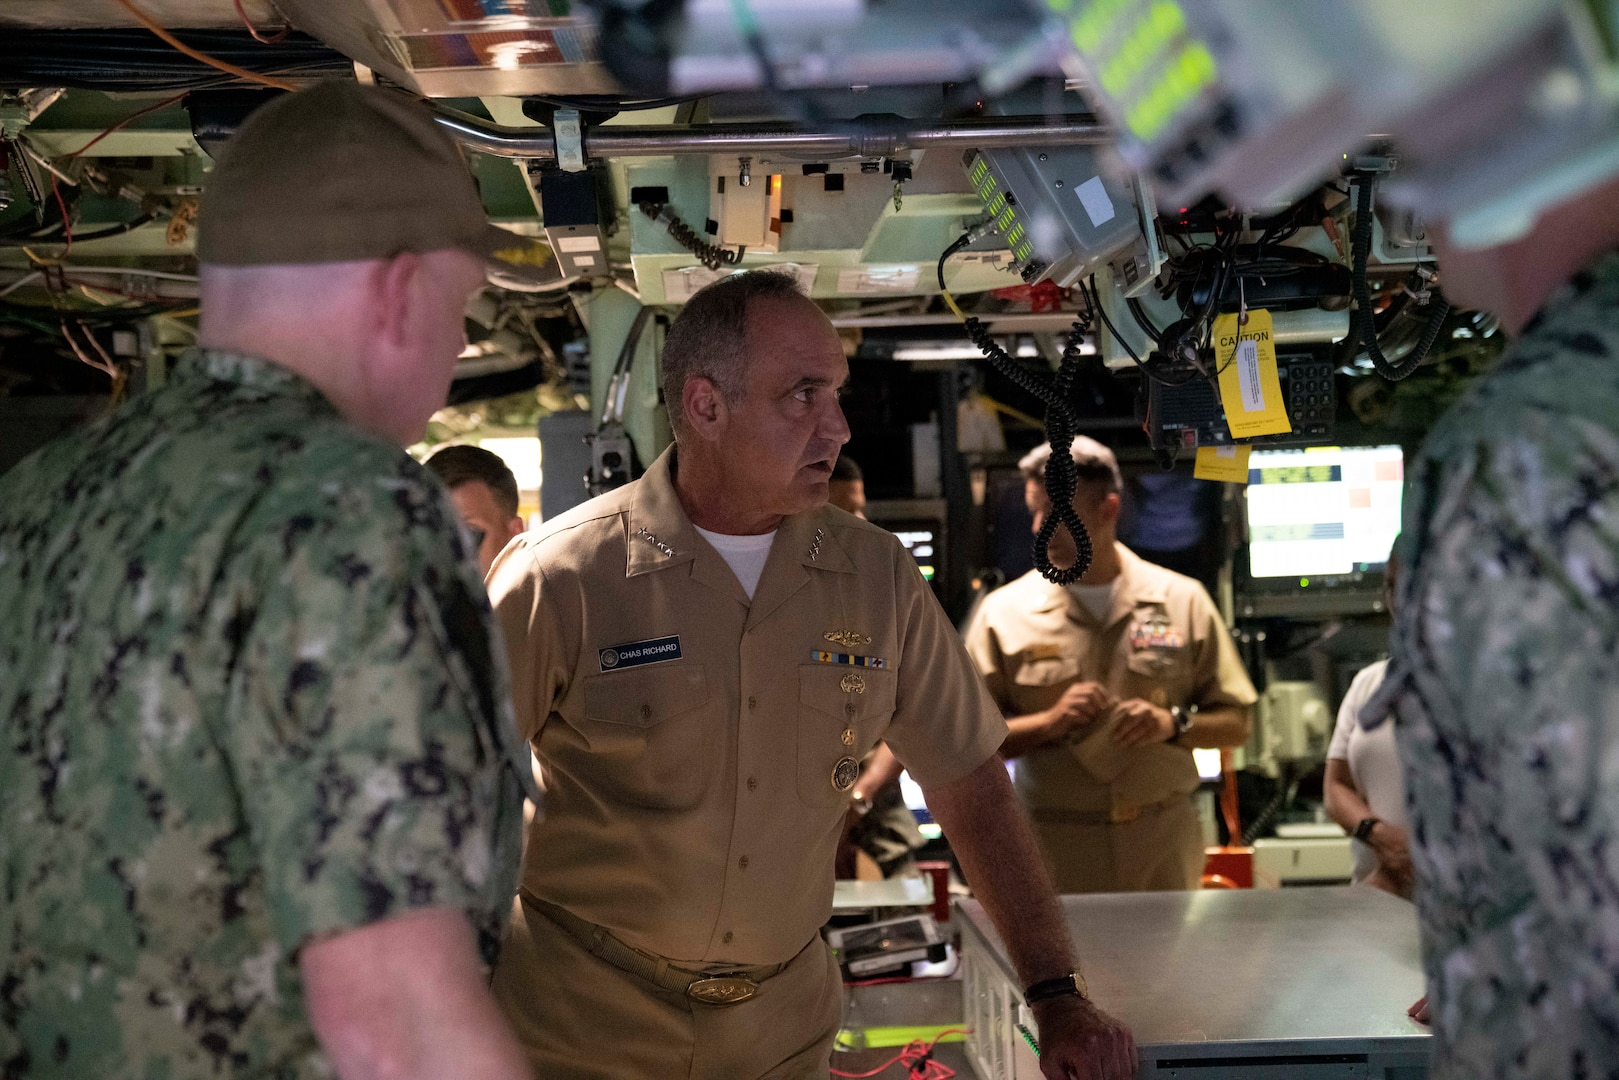 Admiral Chas Richard, Commander, United States Strategic Command, receives a brief in the control room of the Virginia-class fast-attack submarine USS Illinois (SSN 786). Richard visited commands on Guam to see how they fit into the USSTRATCOM mission of deterring strategic attack and employing forces, as directed, to guarantee the security of the nation and its allies.